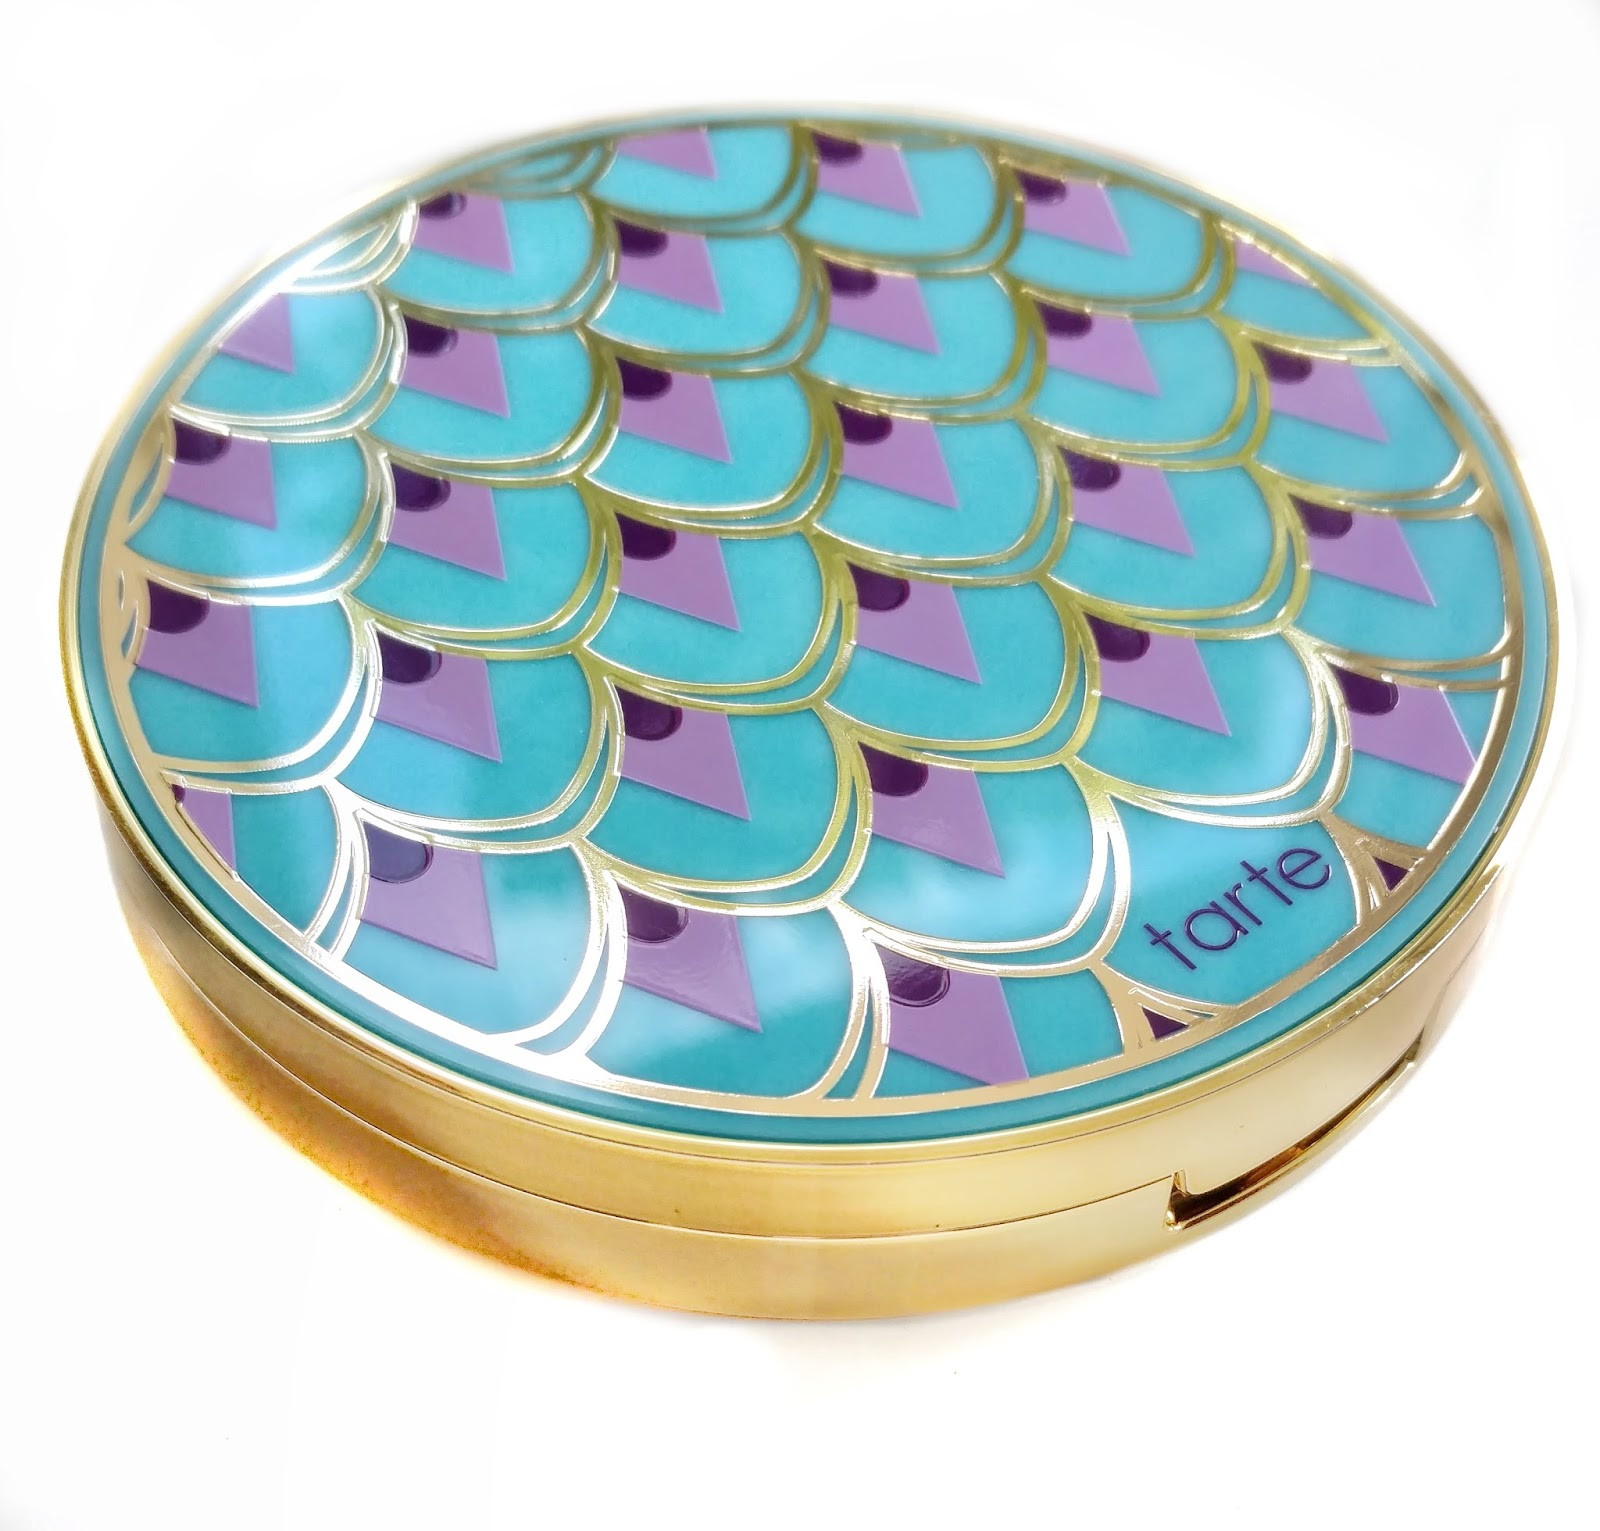 tarte rainforest of the sea volume III